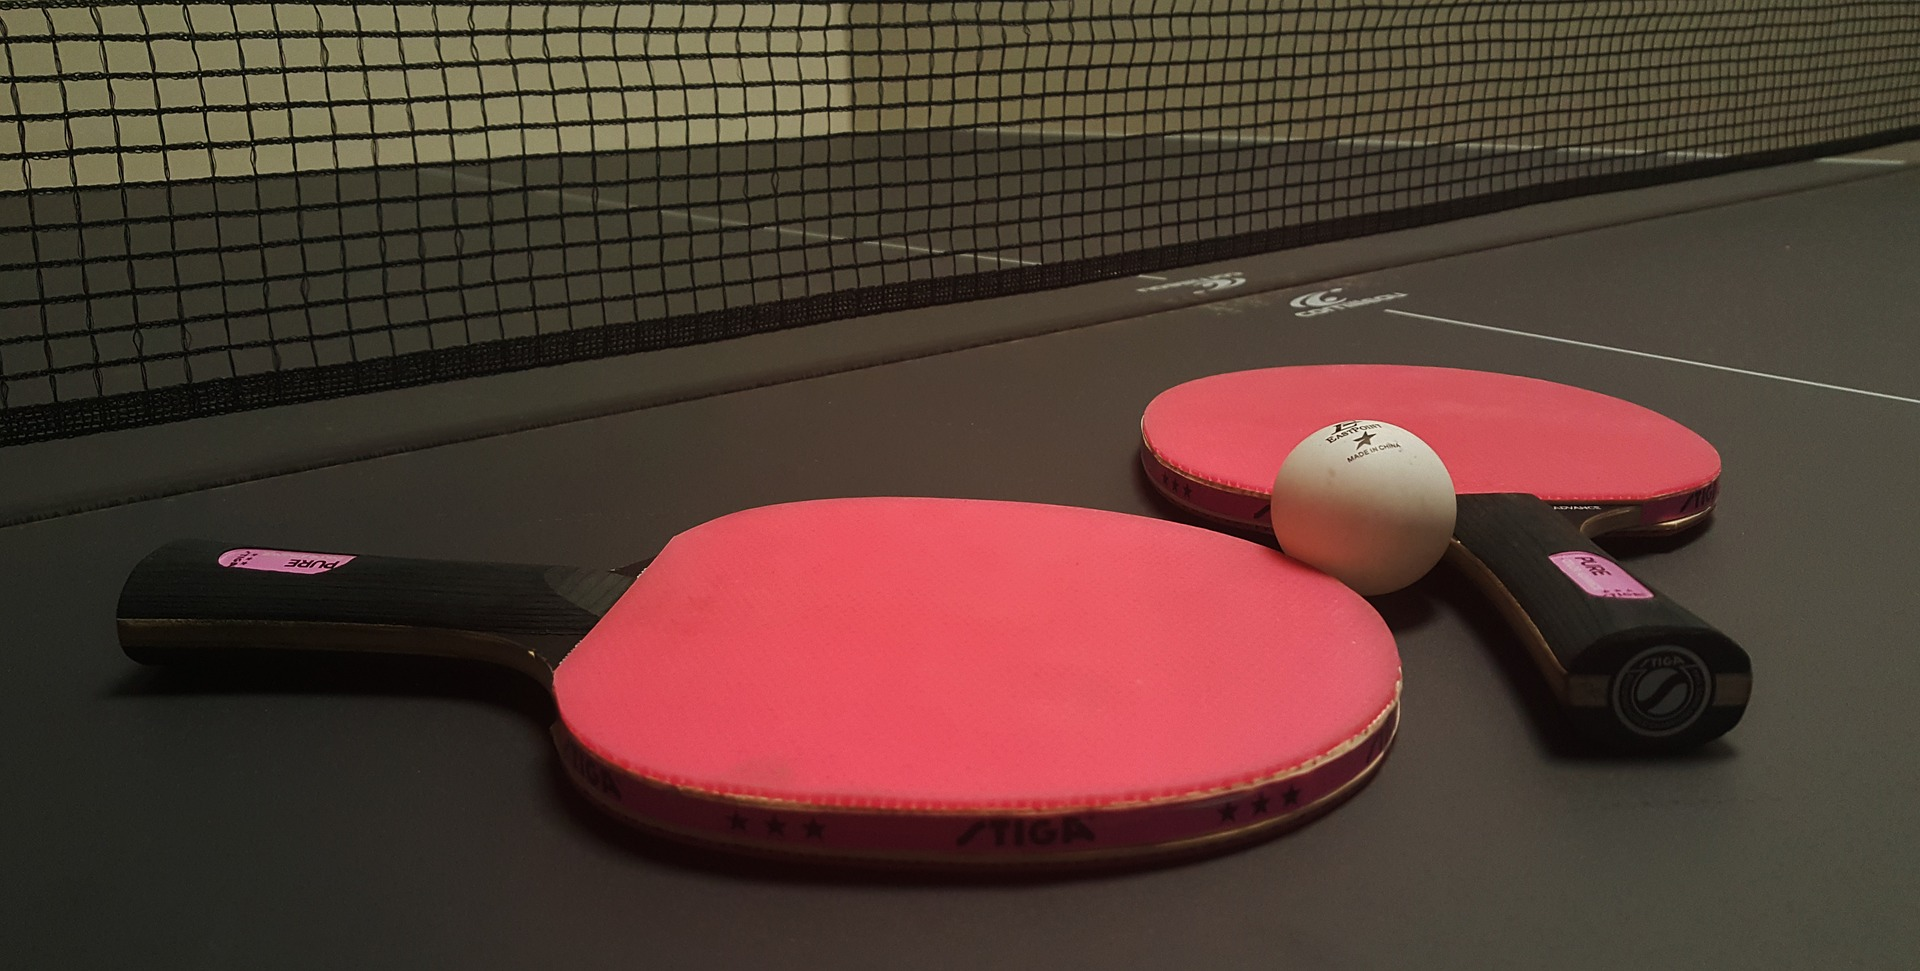 The science behind ping pong paddles  Explained  - King Pong